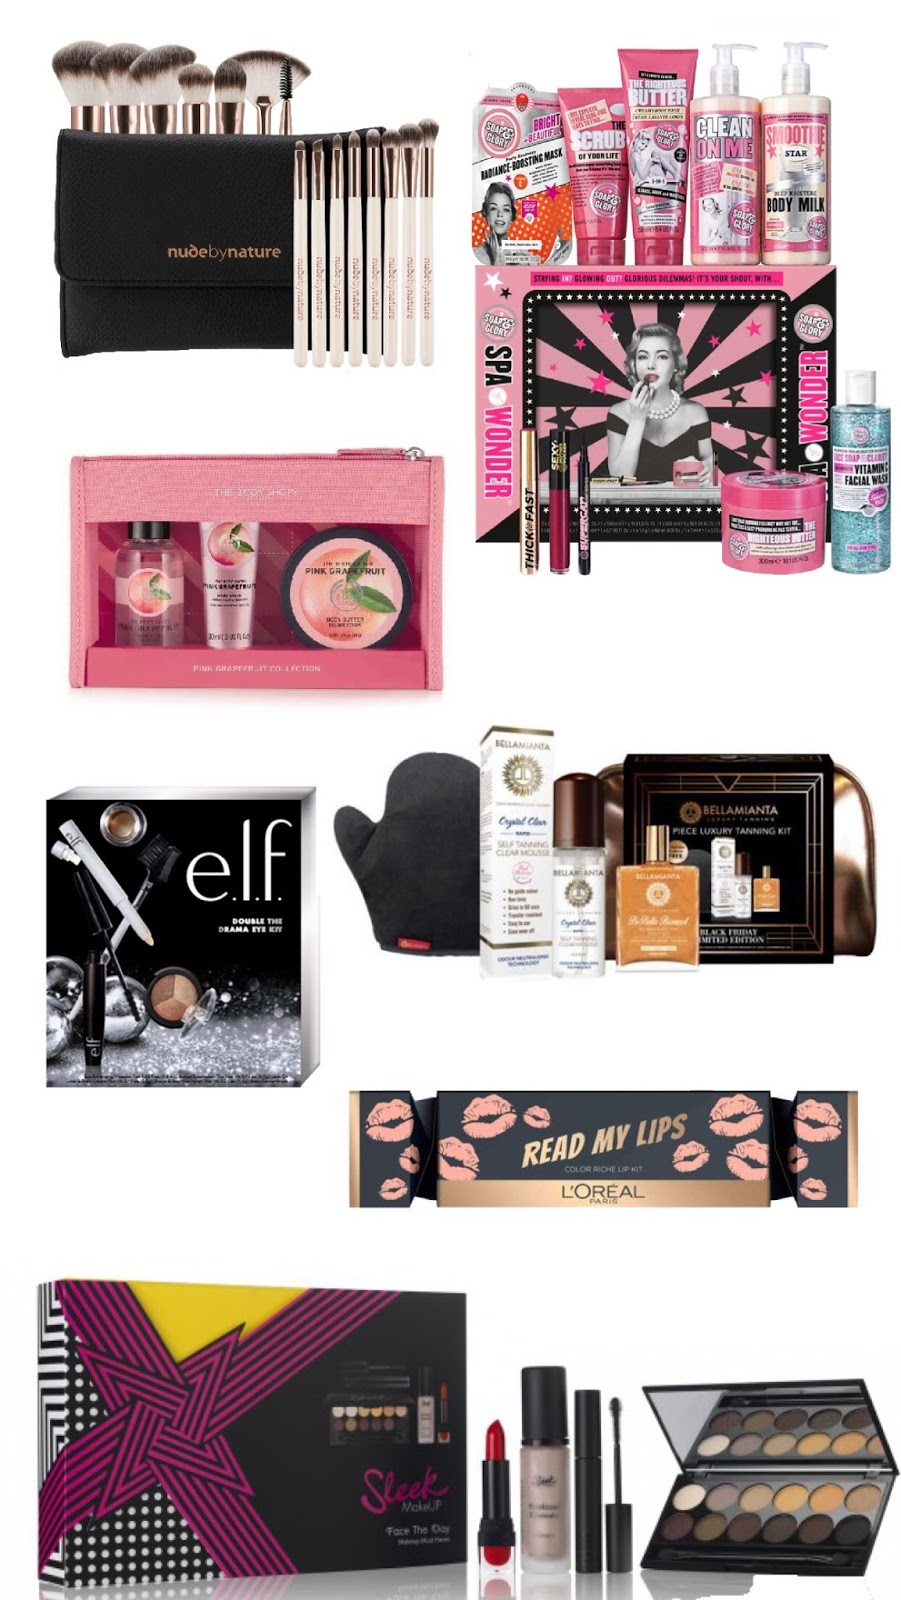 nude by nature christmas makeup brush set here soap glory spa wonder body and beauty set limited edition here body shop pink grapefruit christmas set